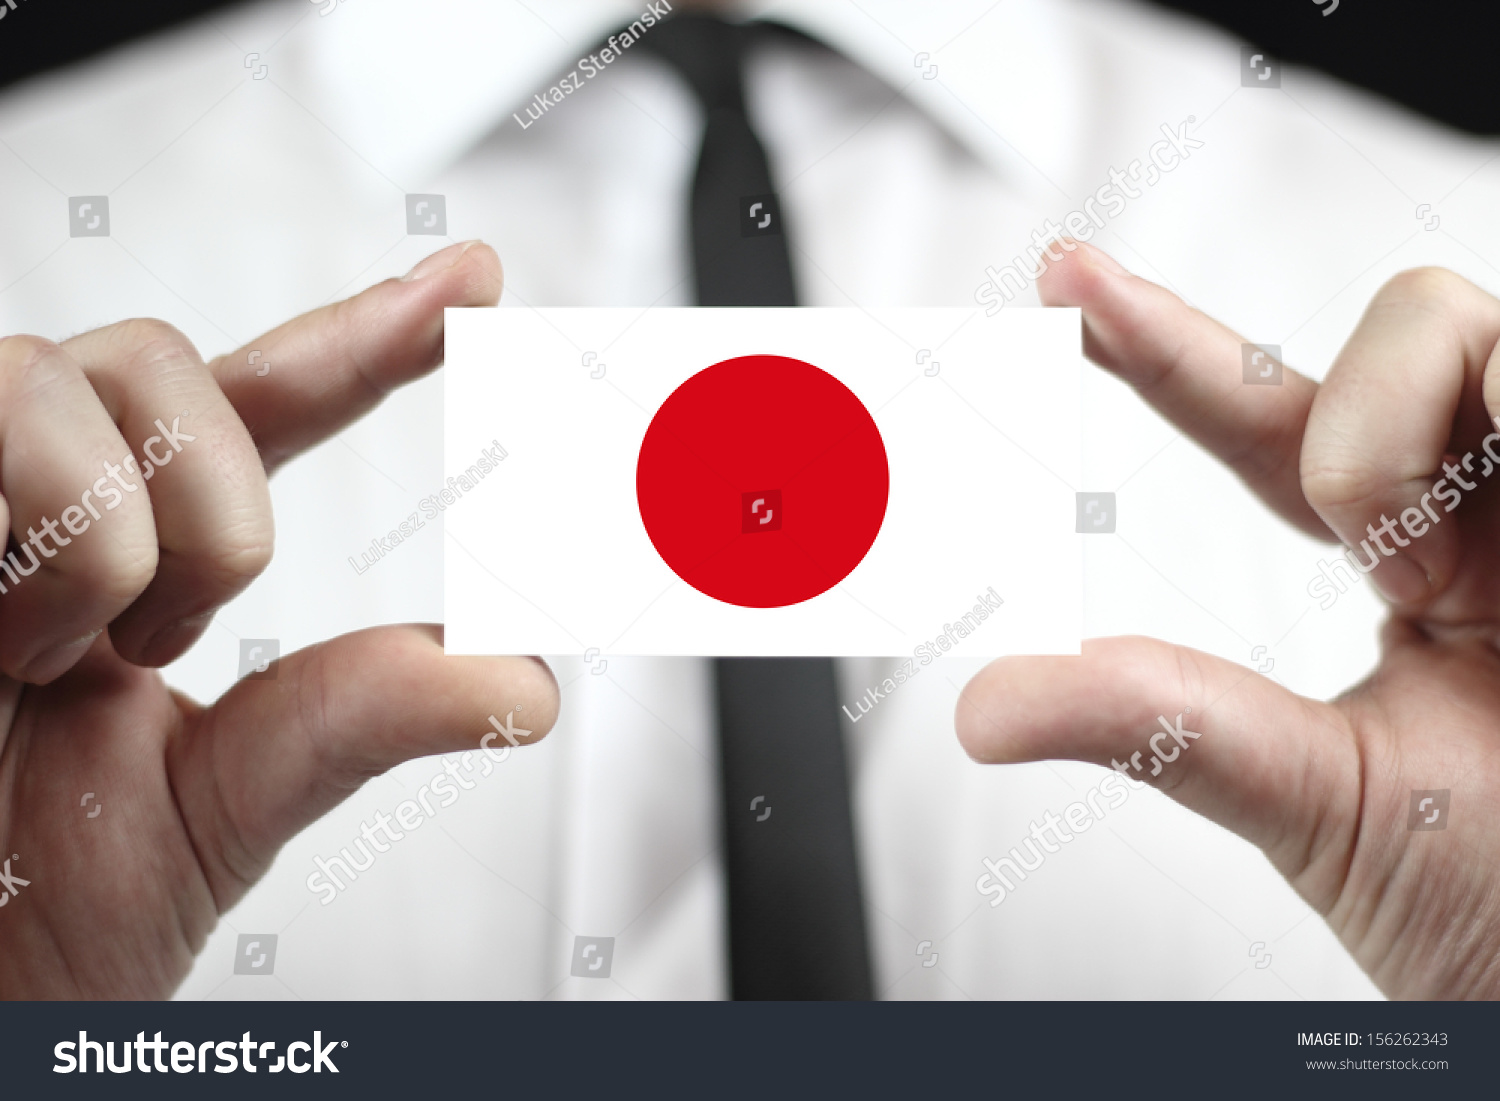 Famous Business Cards Japan Ideas - Business Card Ideas - etadam.info